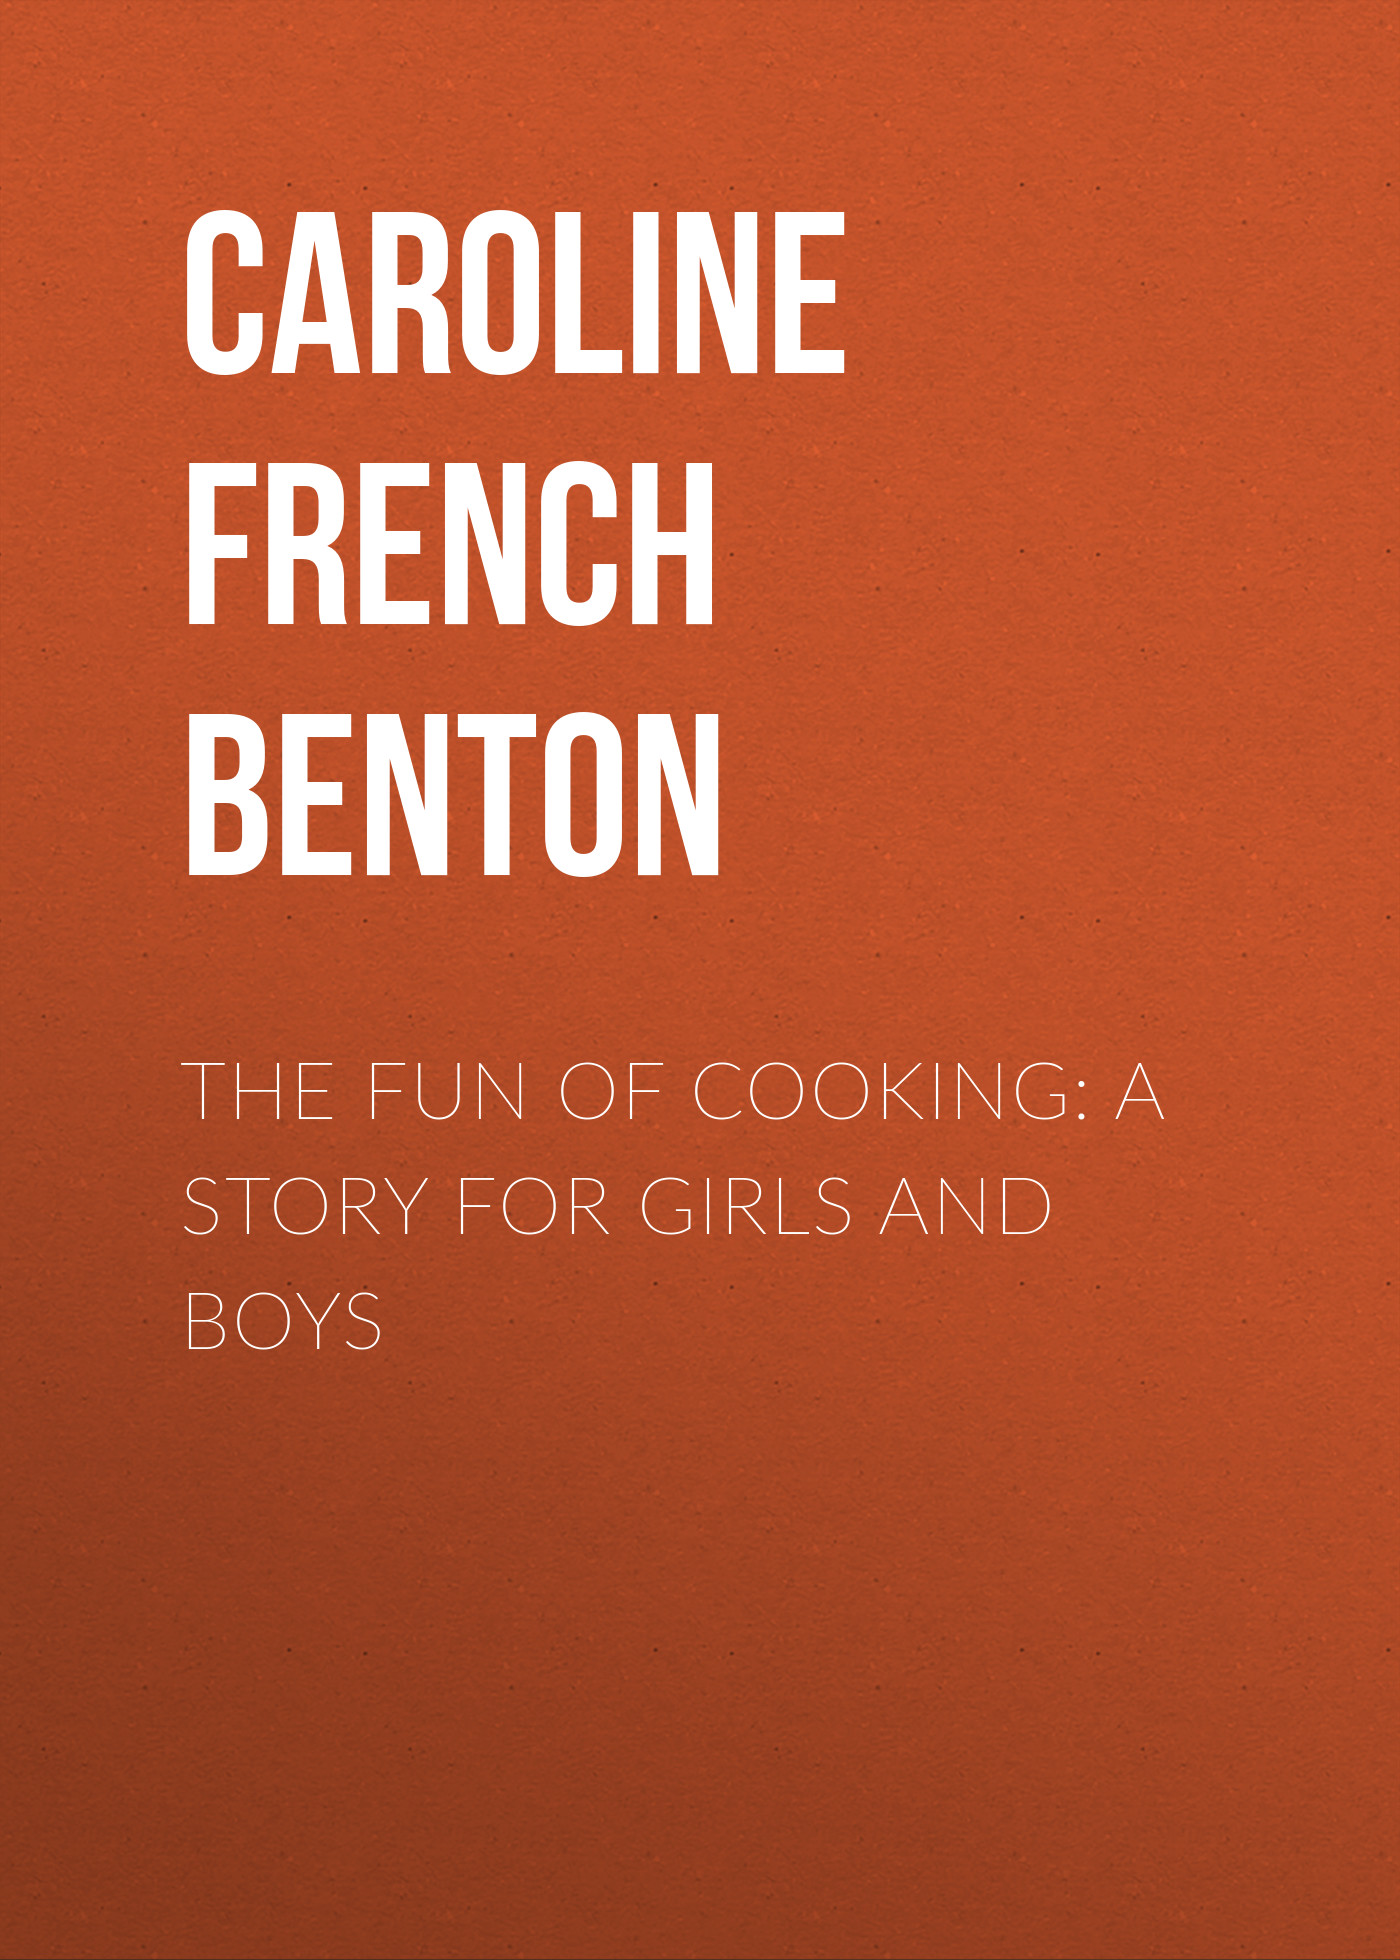 Caroline French Benton The Fun of Cooking: A Story for Girls and Boys весна кукла христина 2 в303 0